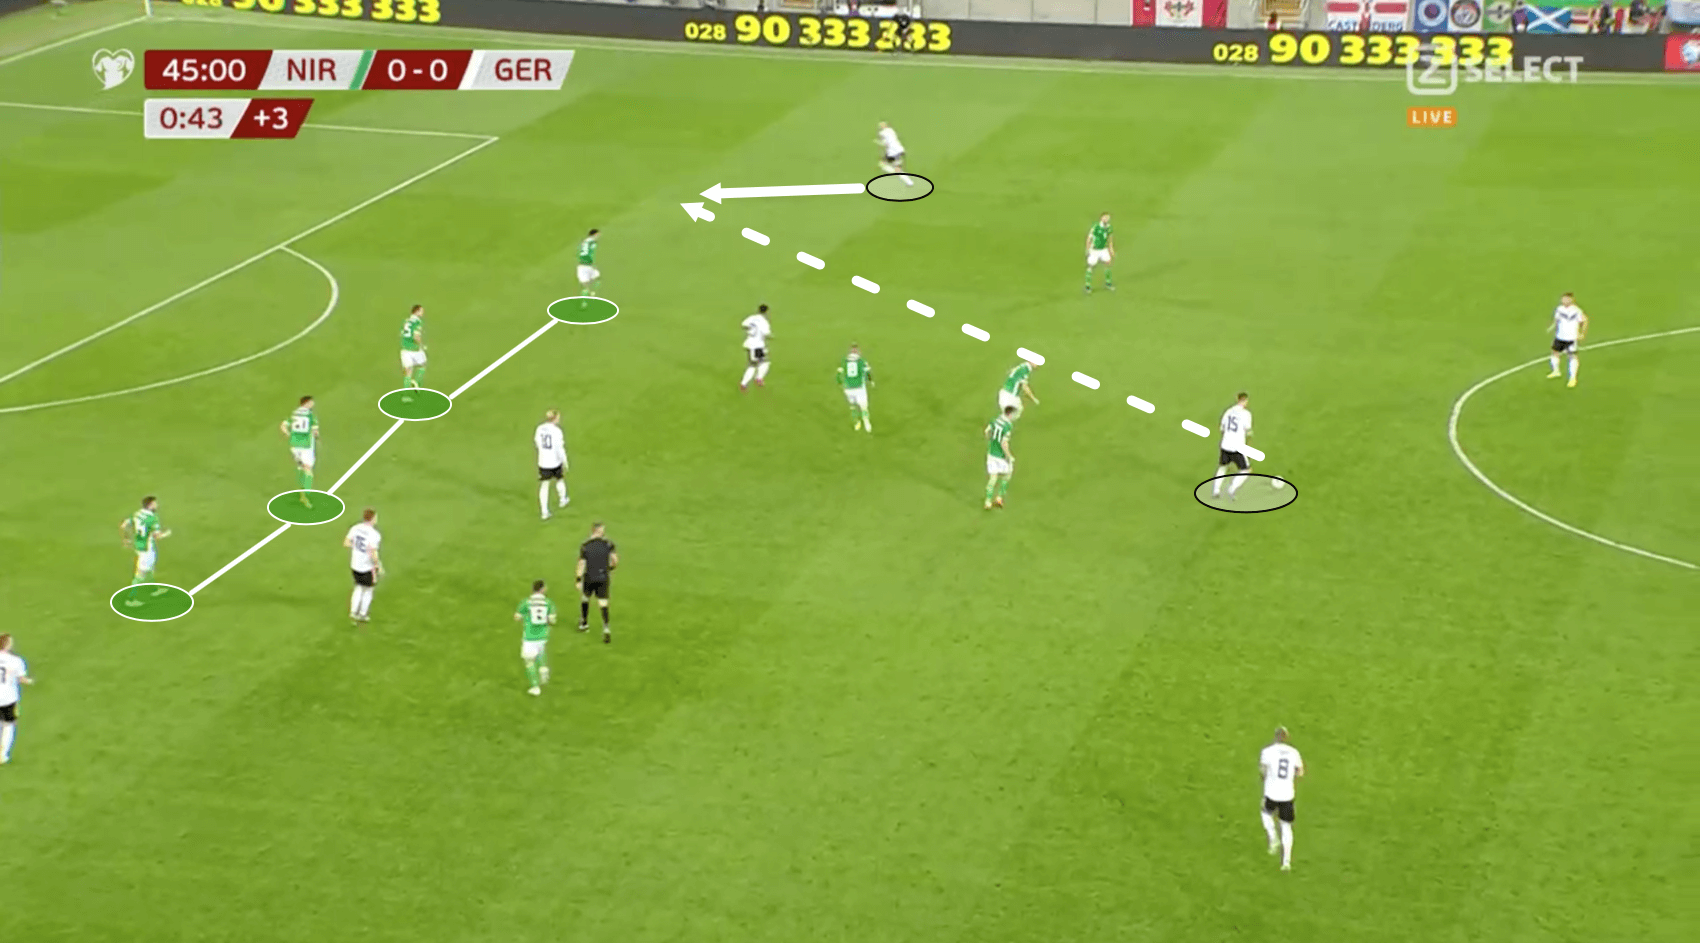 Euro 2020 Qualifiers: Northern Ireland vs Germany - tactical analysis tactics